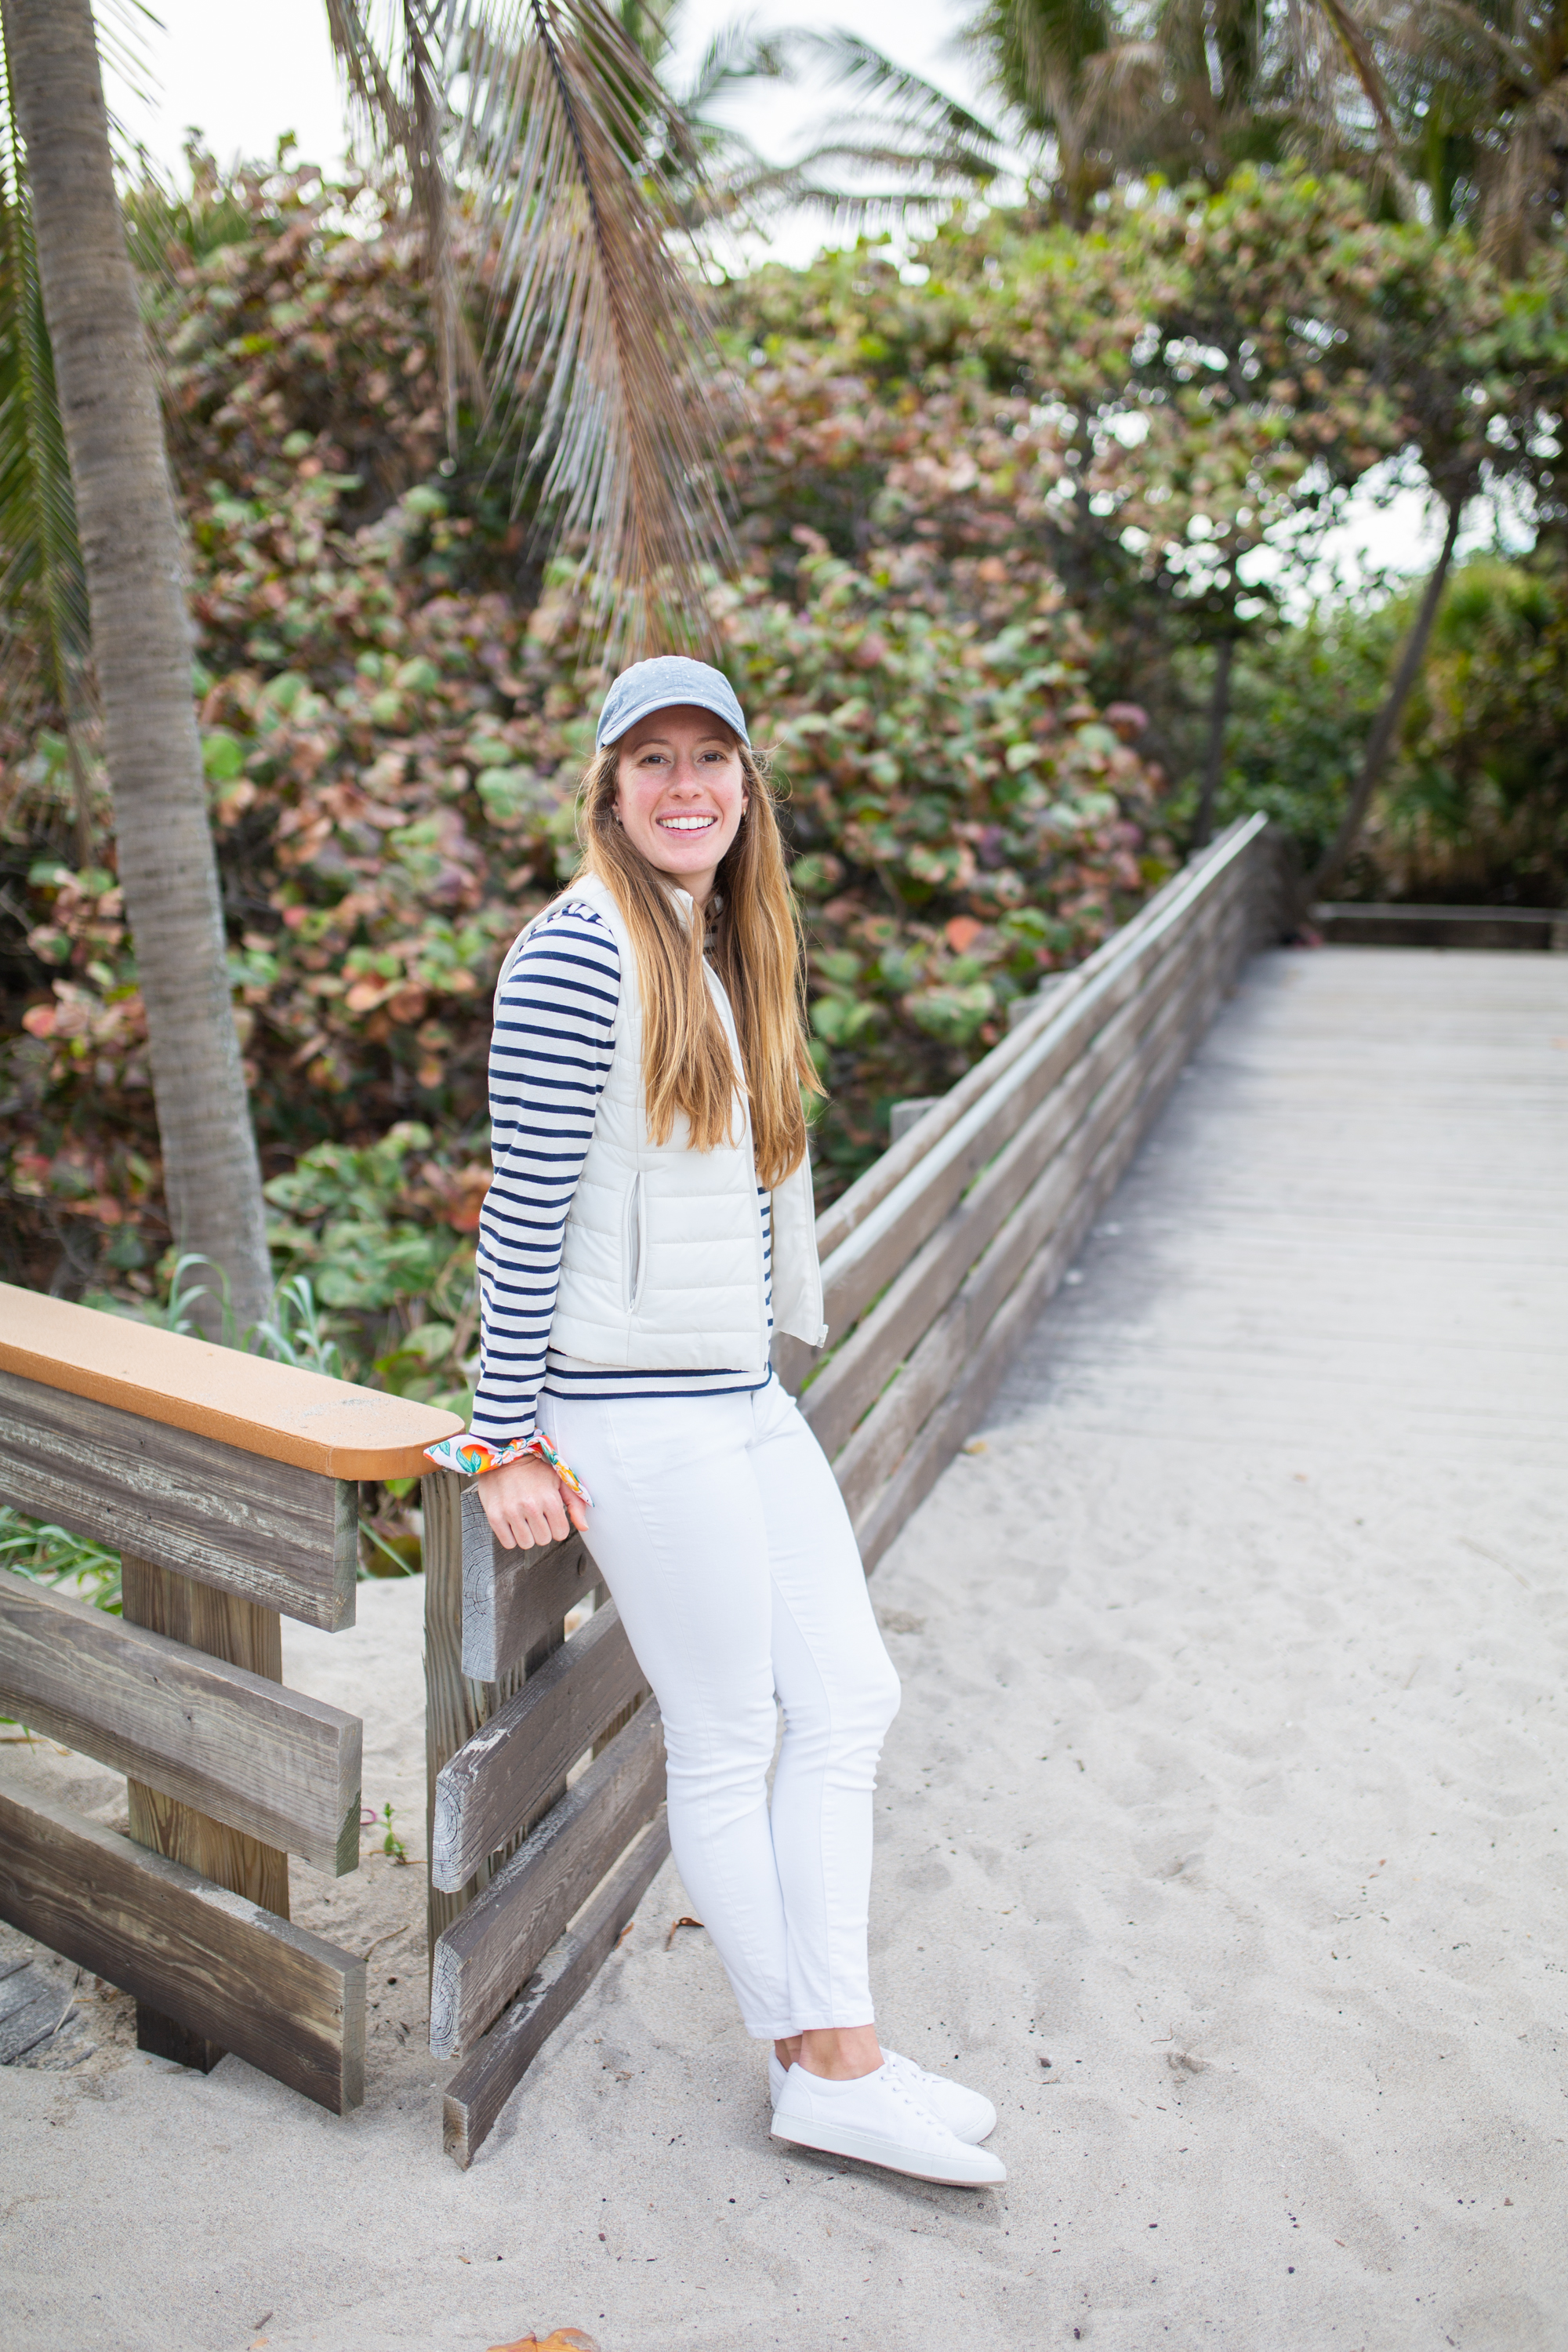 Saint James Breton Striped Shirt / American Style / Classic Style / How to Wear a Striped Top / Casual Outfit / White Jeans / Beach Style / Beach Outfit - Sunshine Style, A Florida Based Fashion Blog by Katie